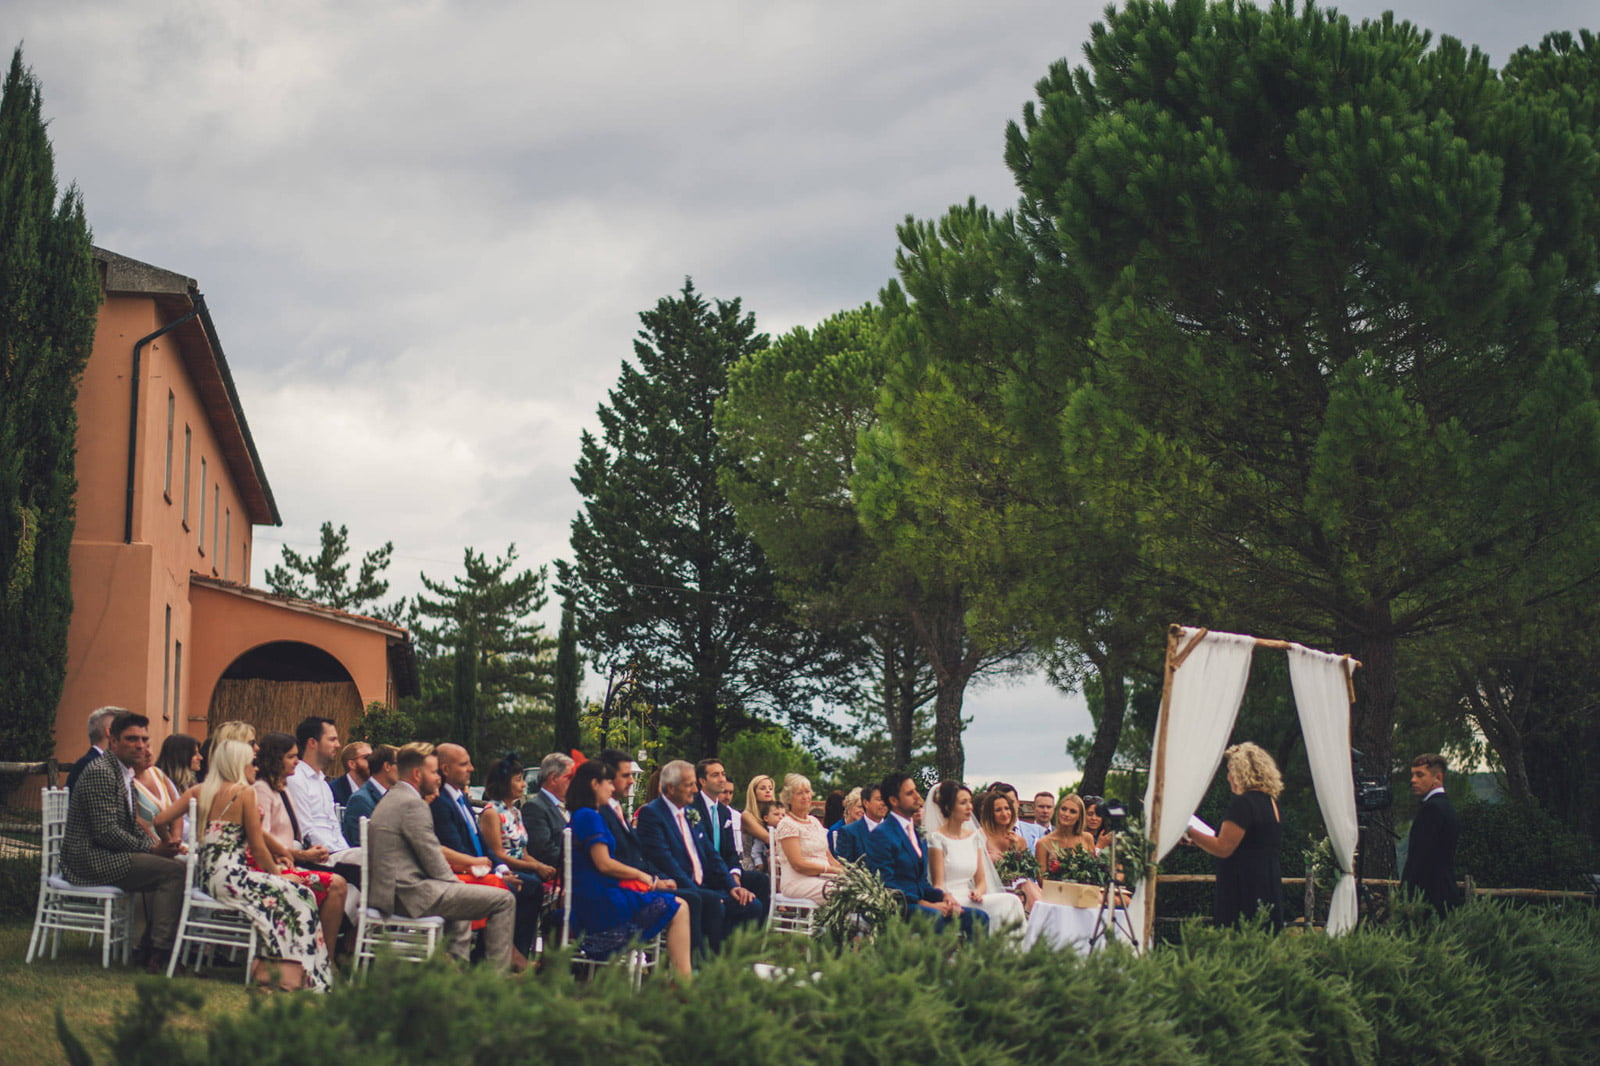 056-wedding-tuscany-san-galgano-federico-pannacci-photographer